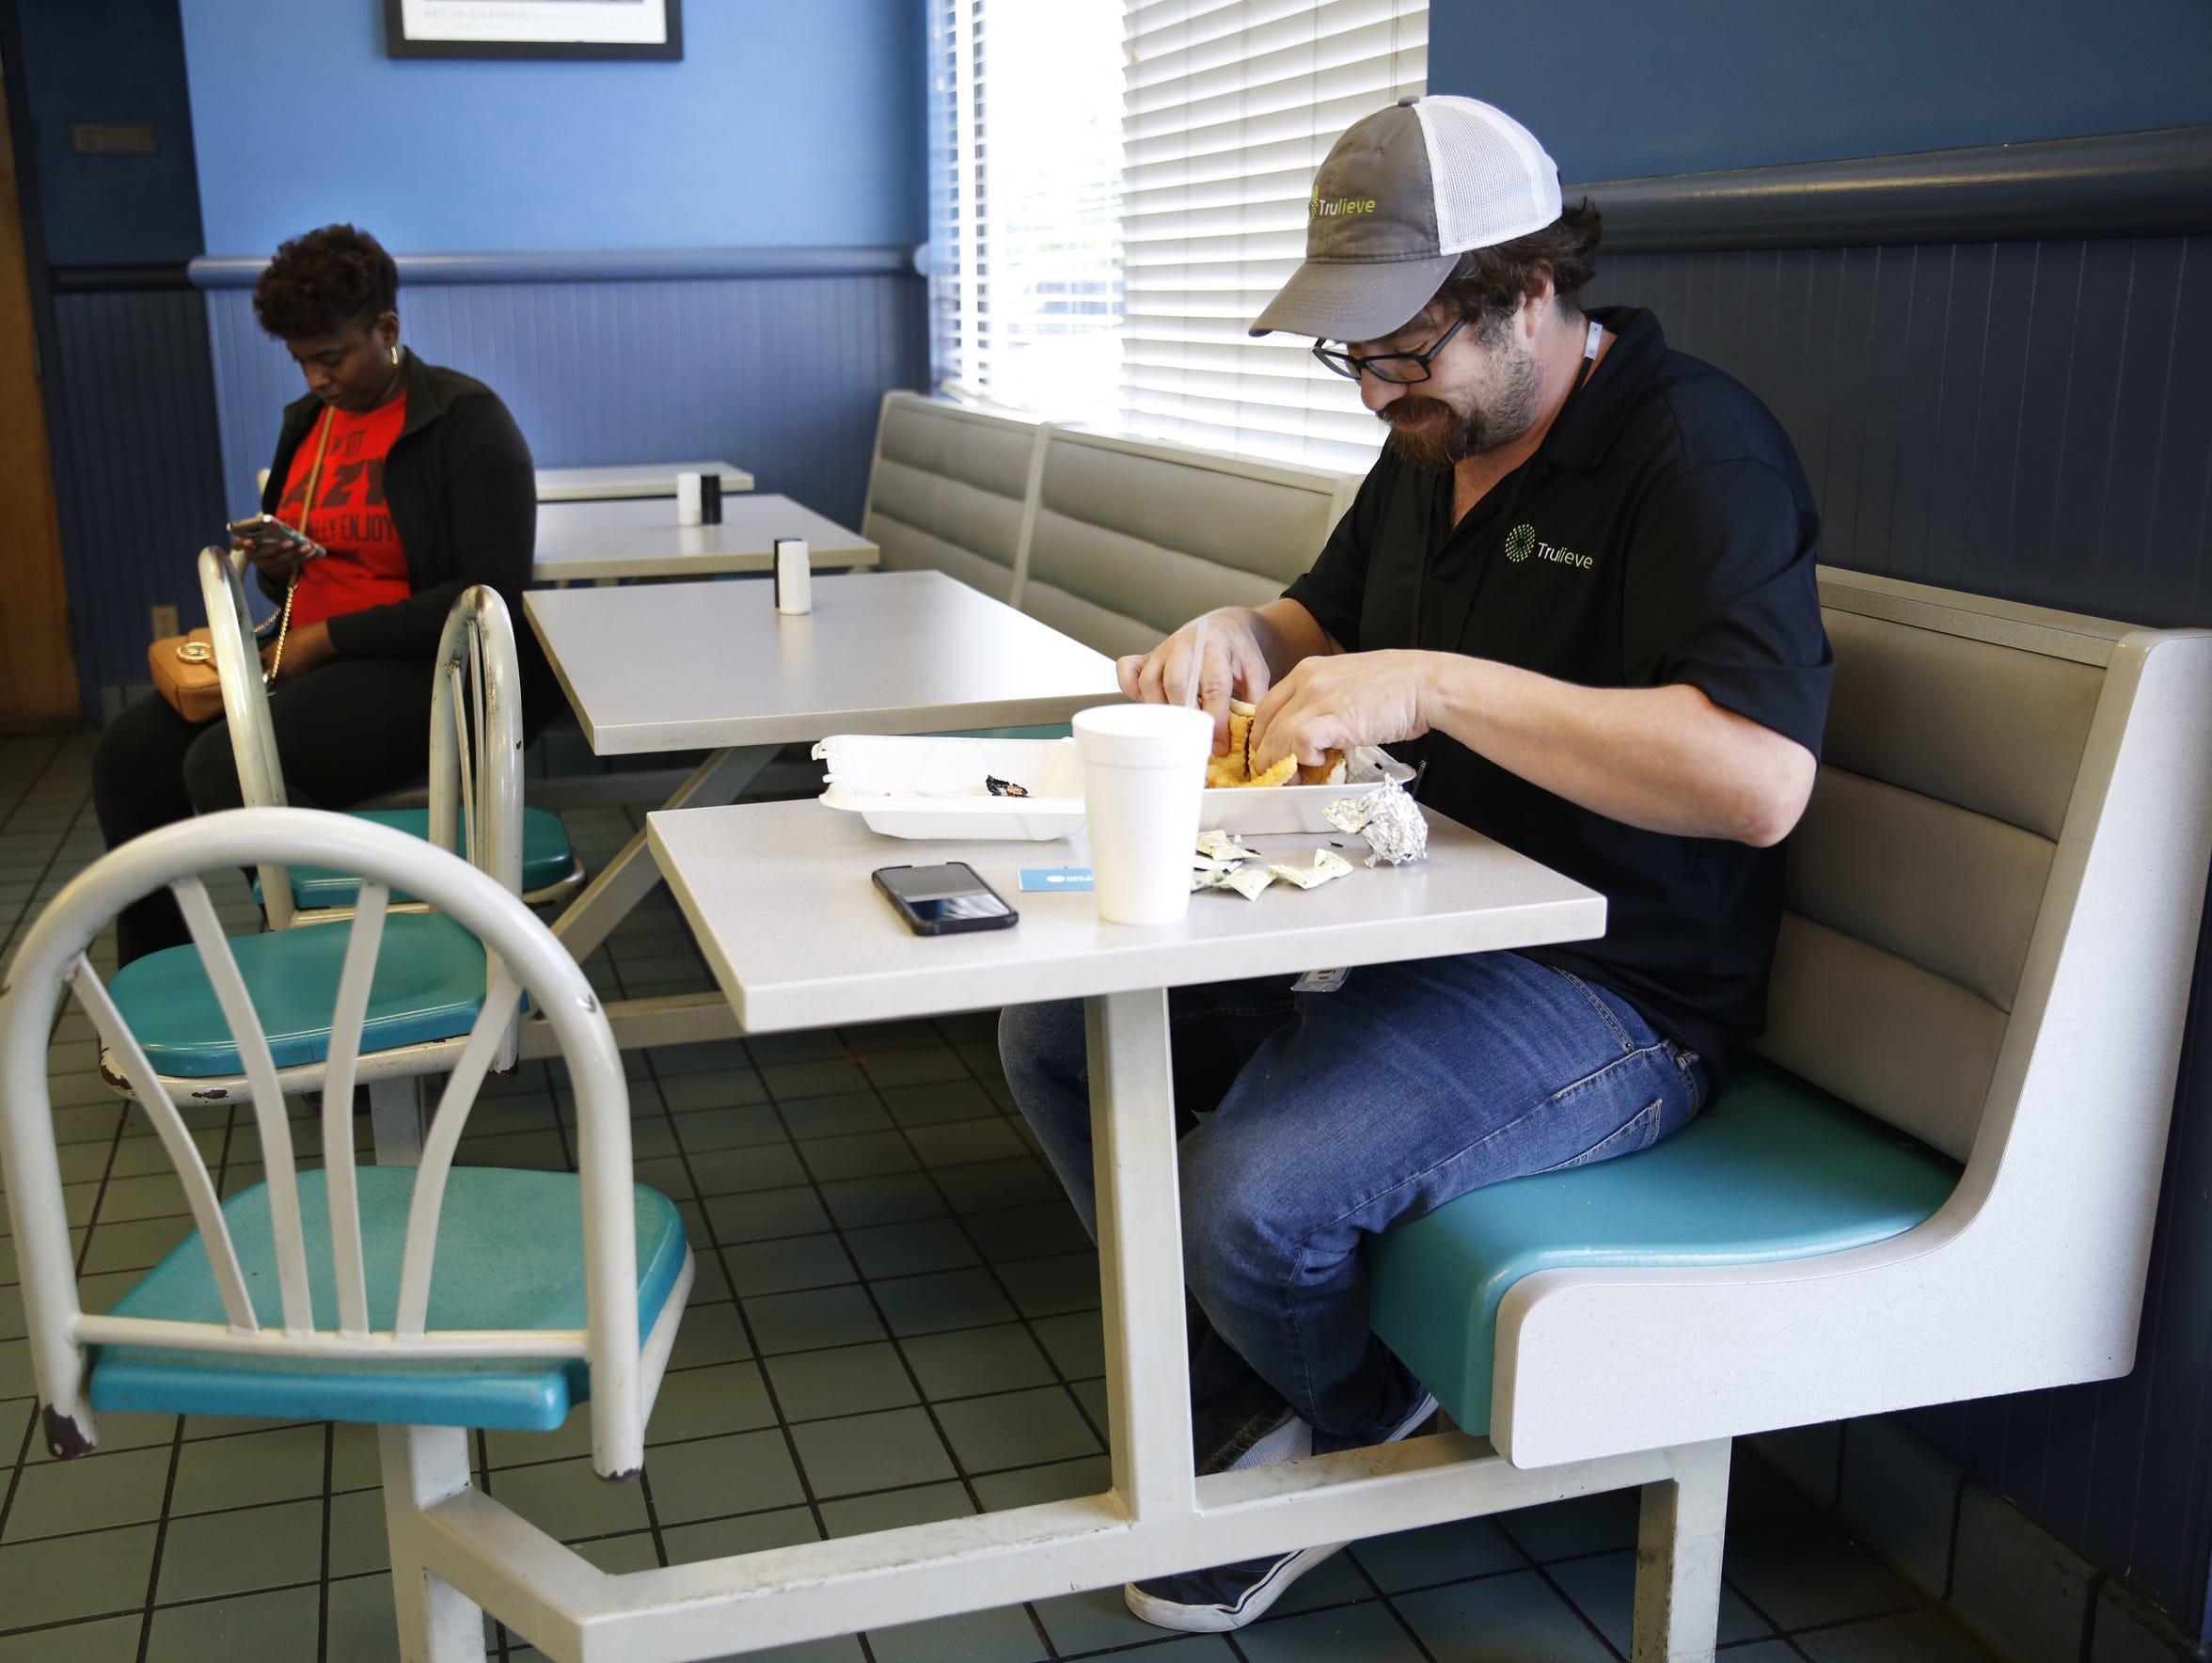 Trulieve employee Jeremy Sullivan eats lunch at AJ's